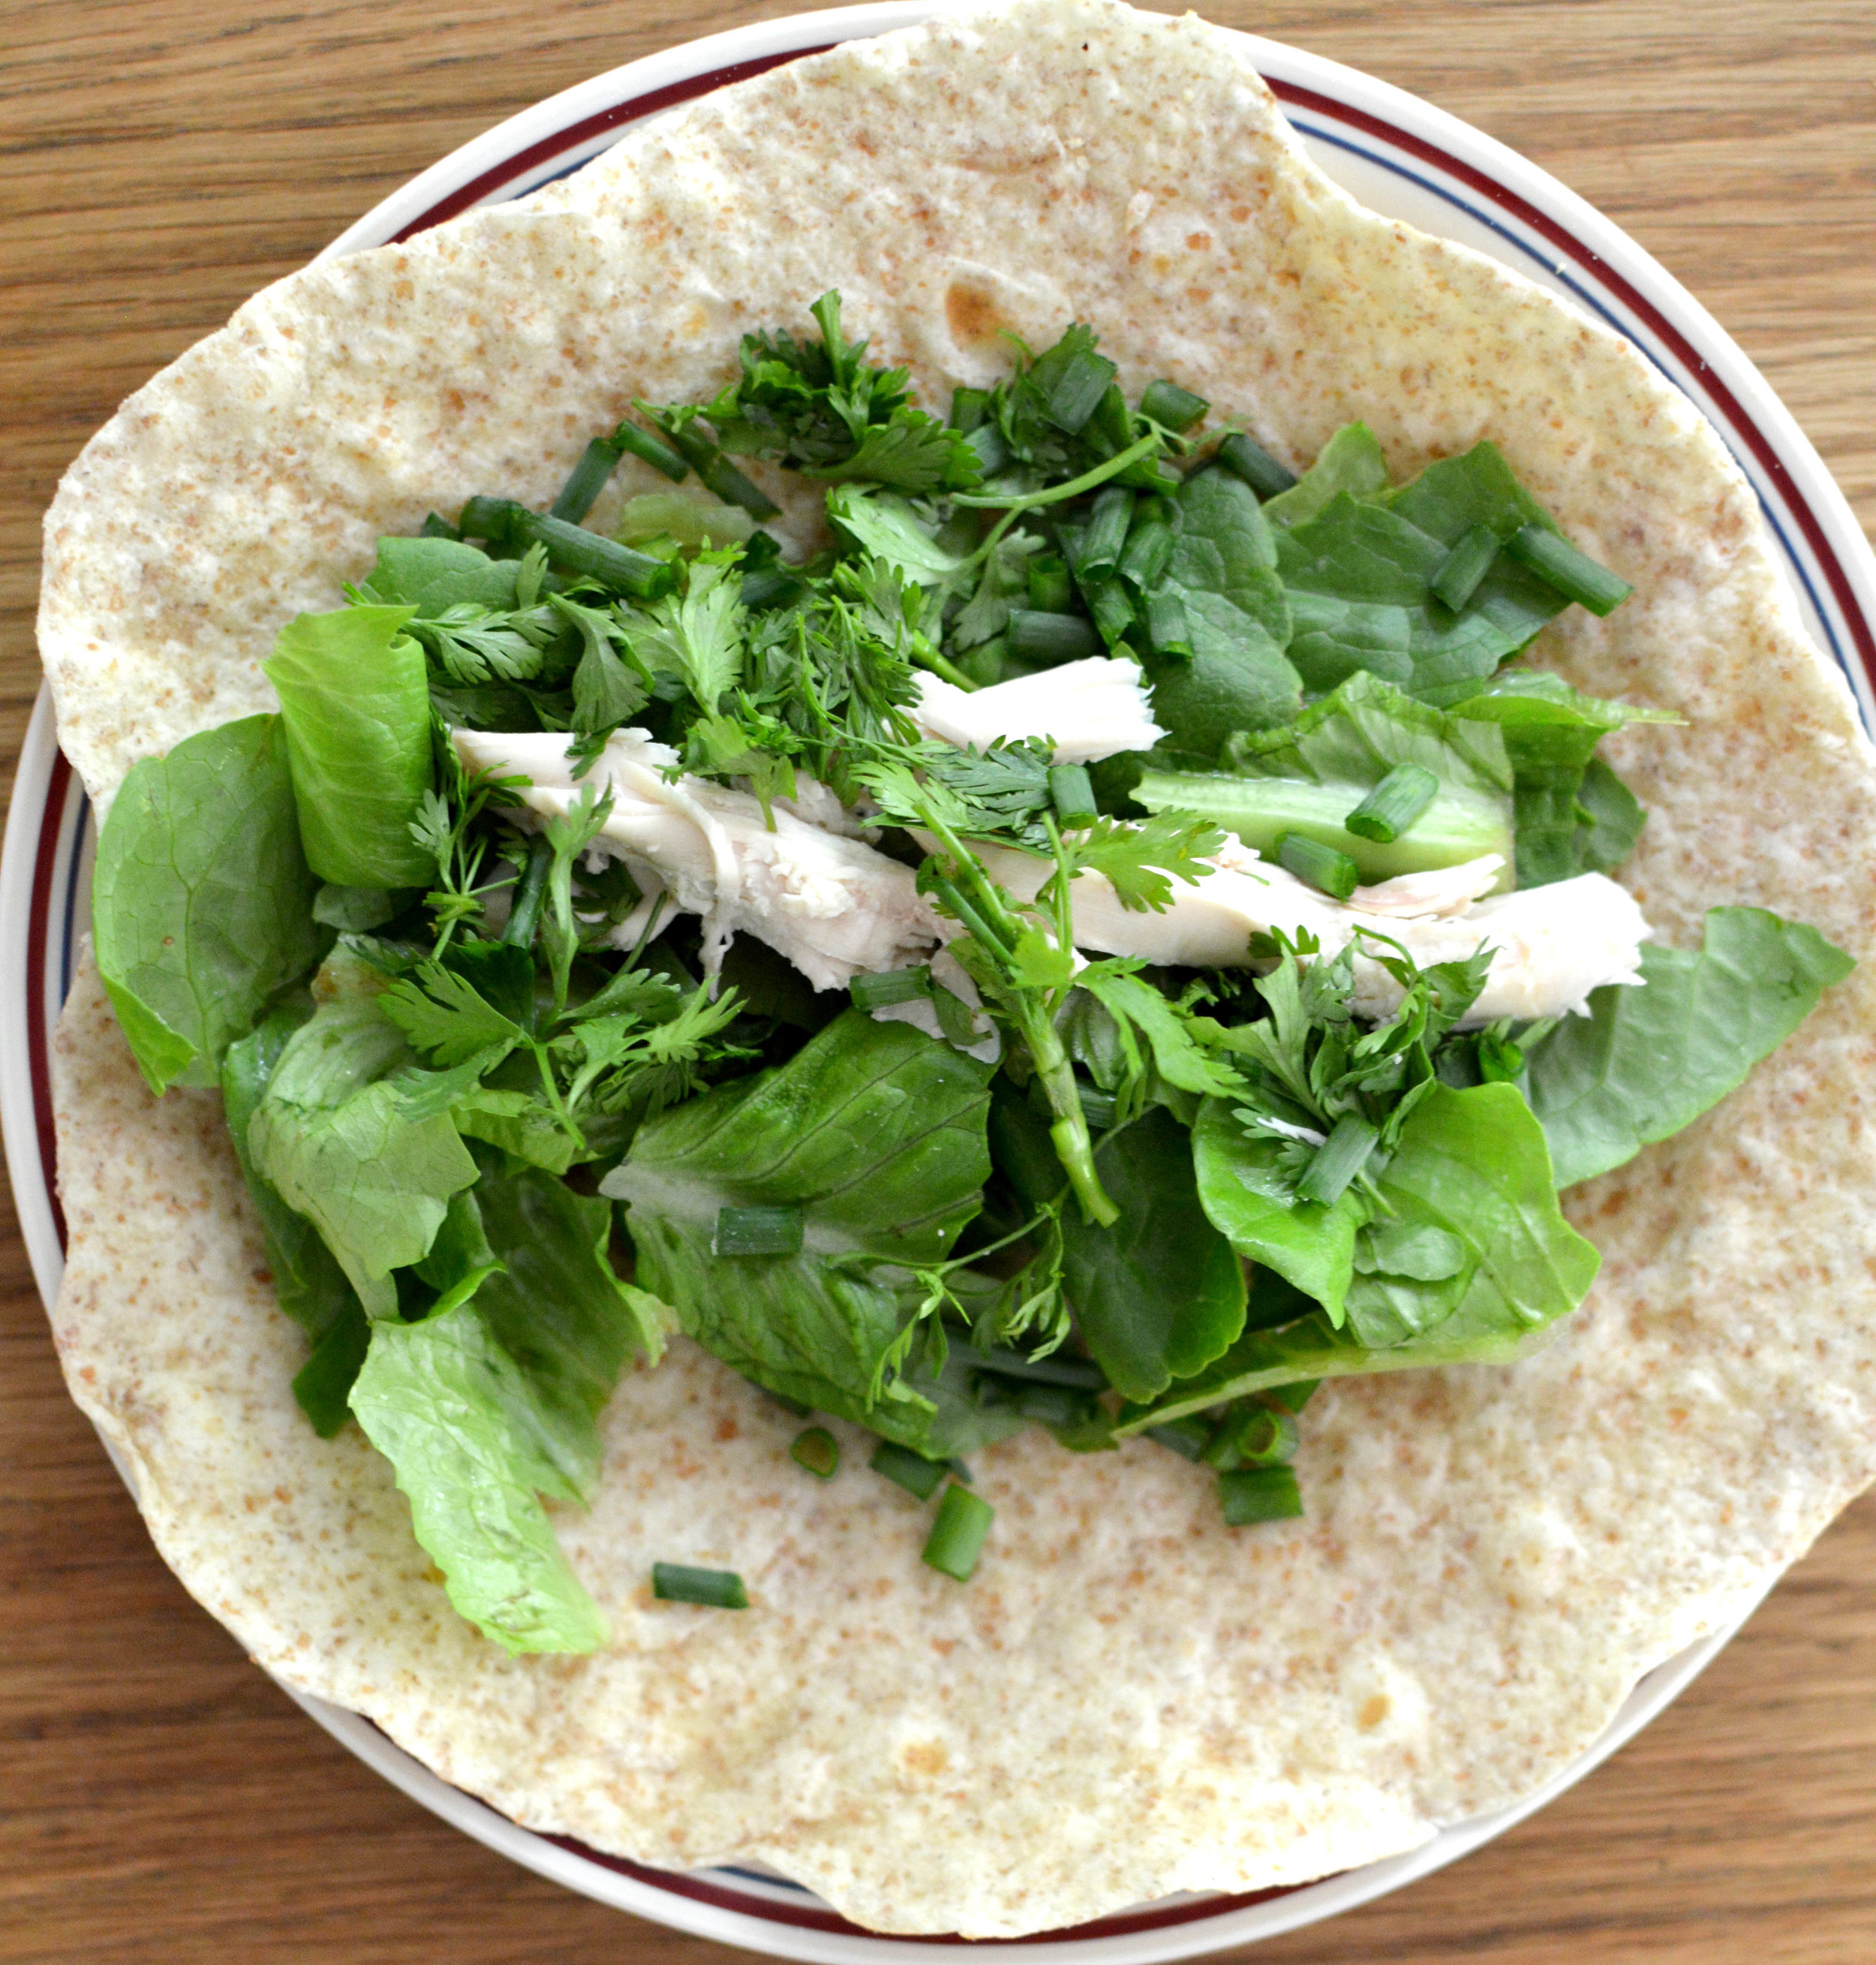 Homemade Spelt Flour Tortillas with lettuce, cilantro, green onions, chicken, and homemade dressing. We roll them up and eat them like a wrap.